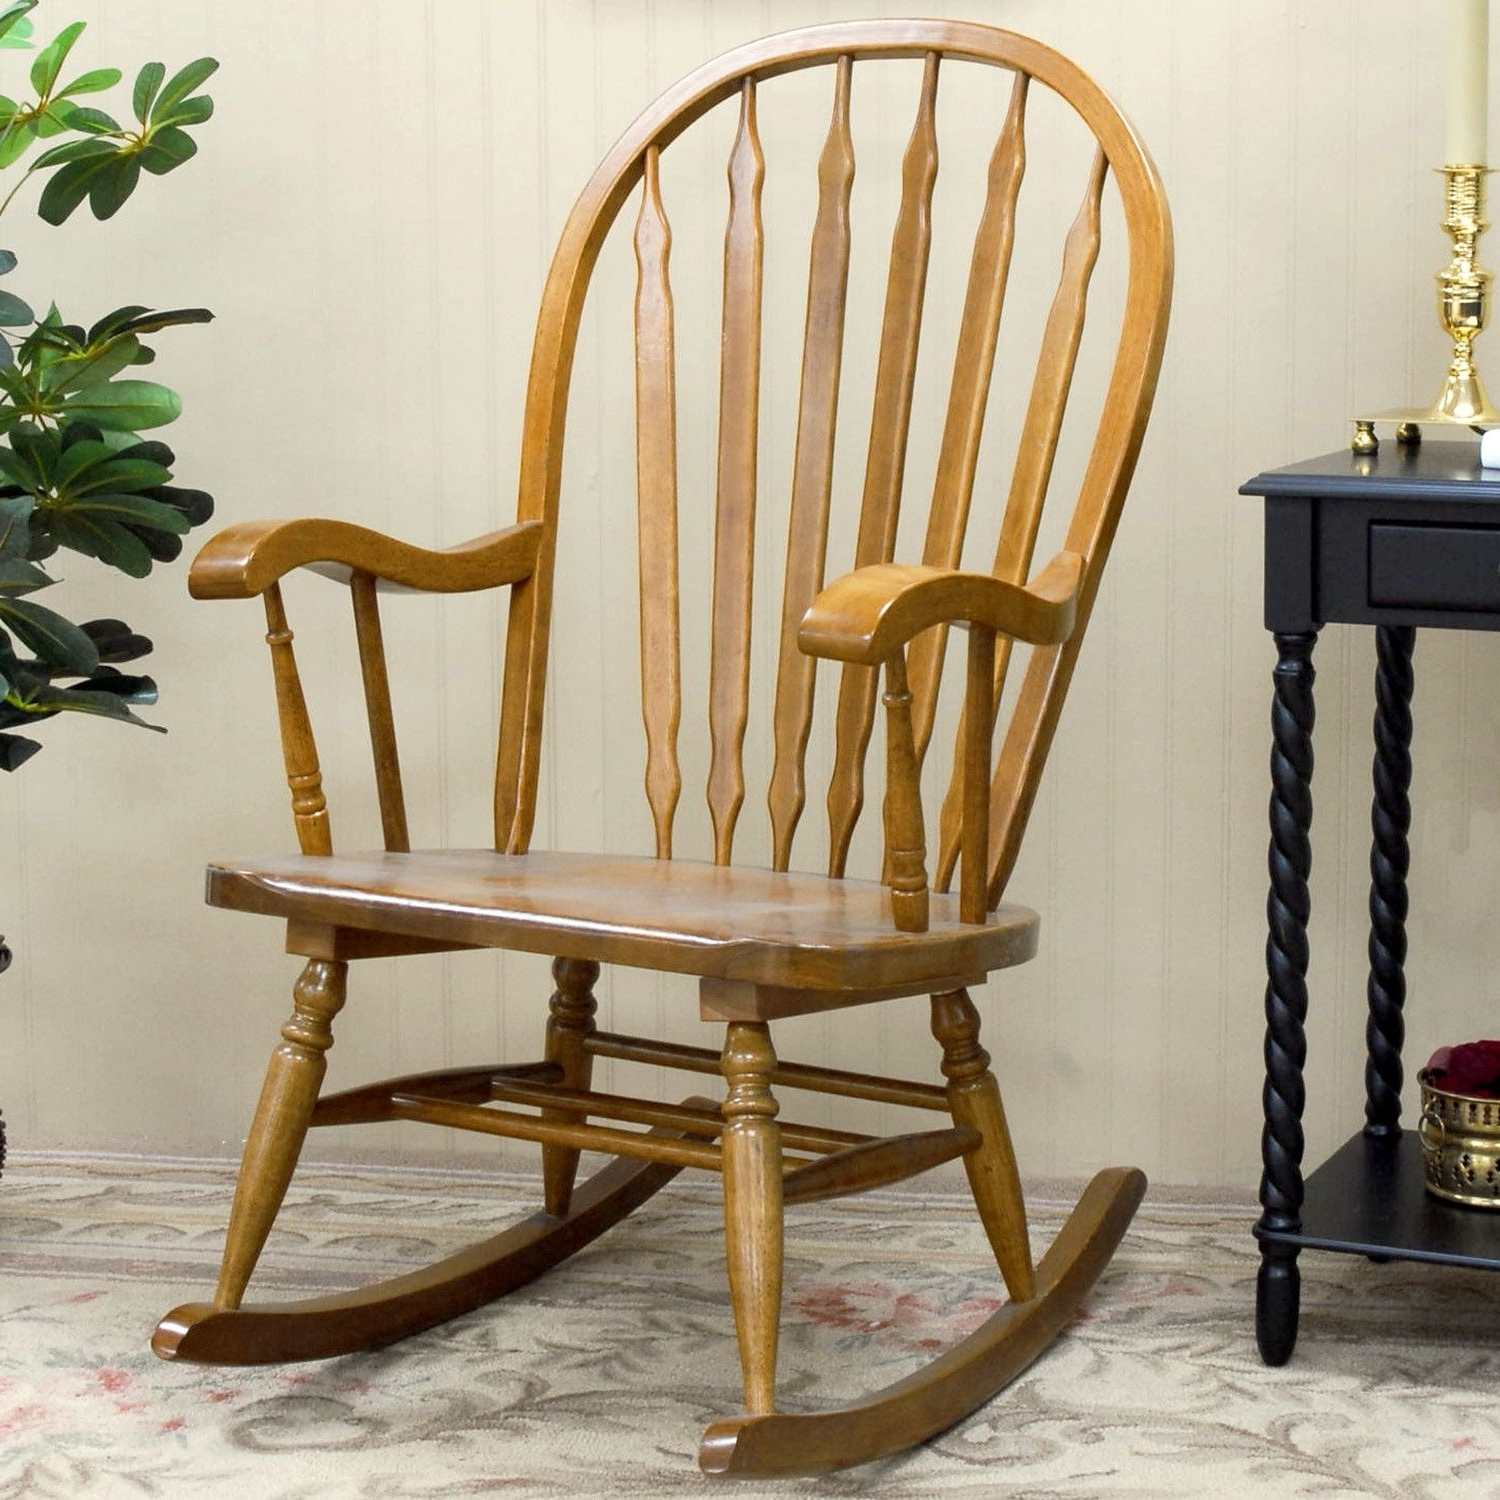 Mural Of Mission Style Rocking Chair: History And Designs In Preferred Rocking Chairs At Wayfair (View 10 of 20)